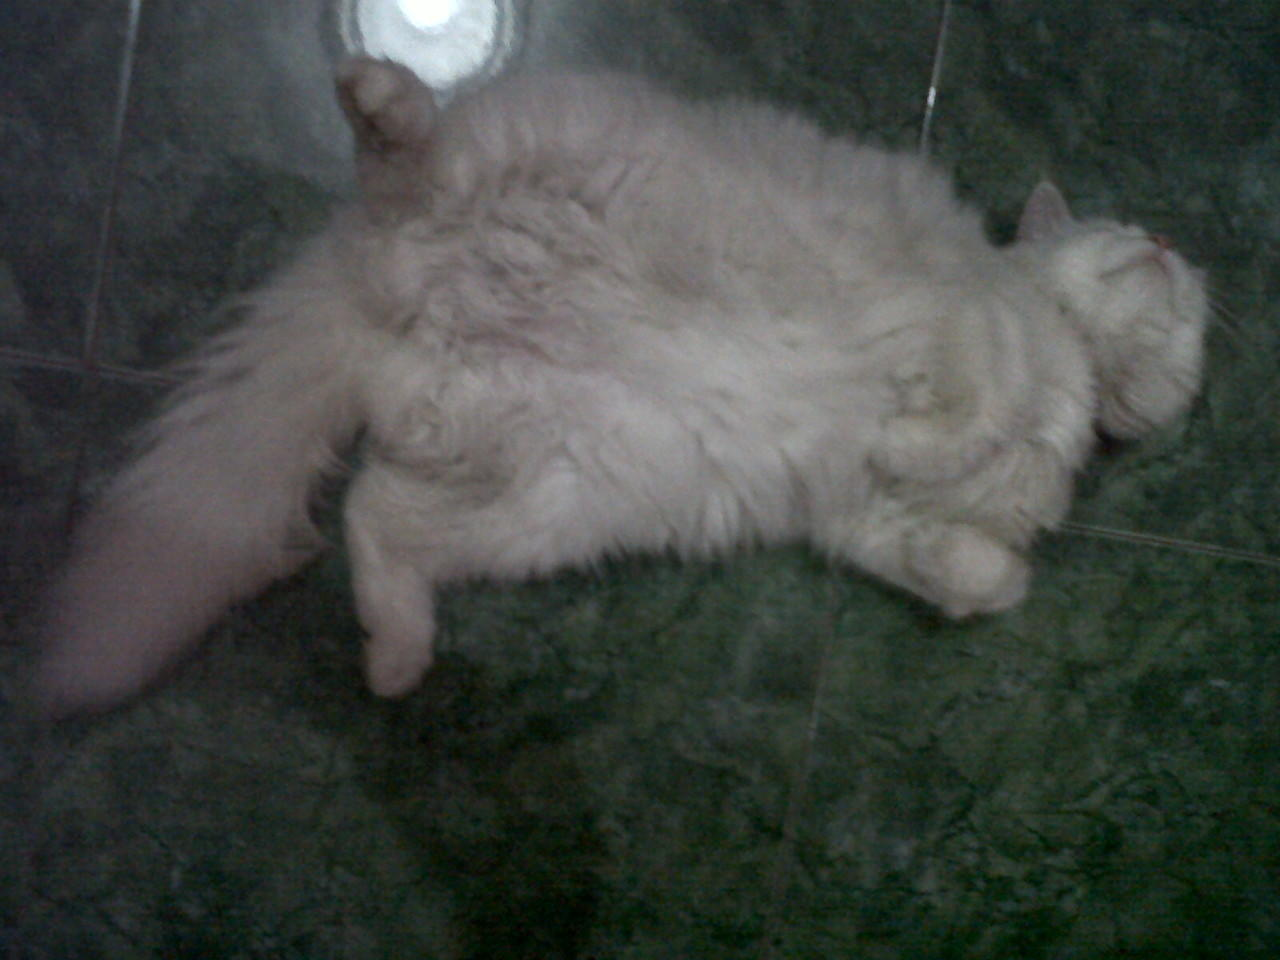 WTS Kucing Persia Medium Nose White